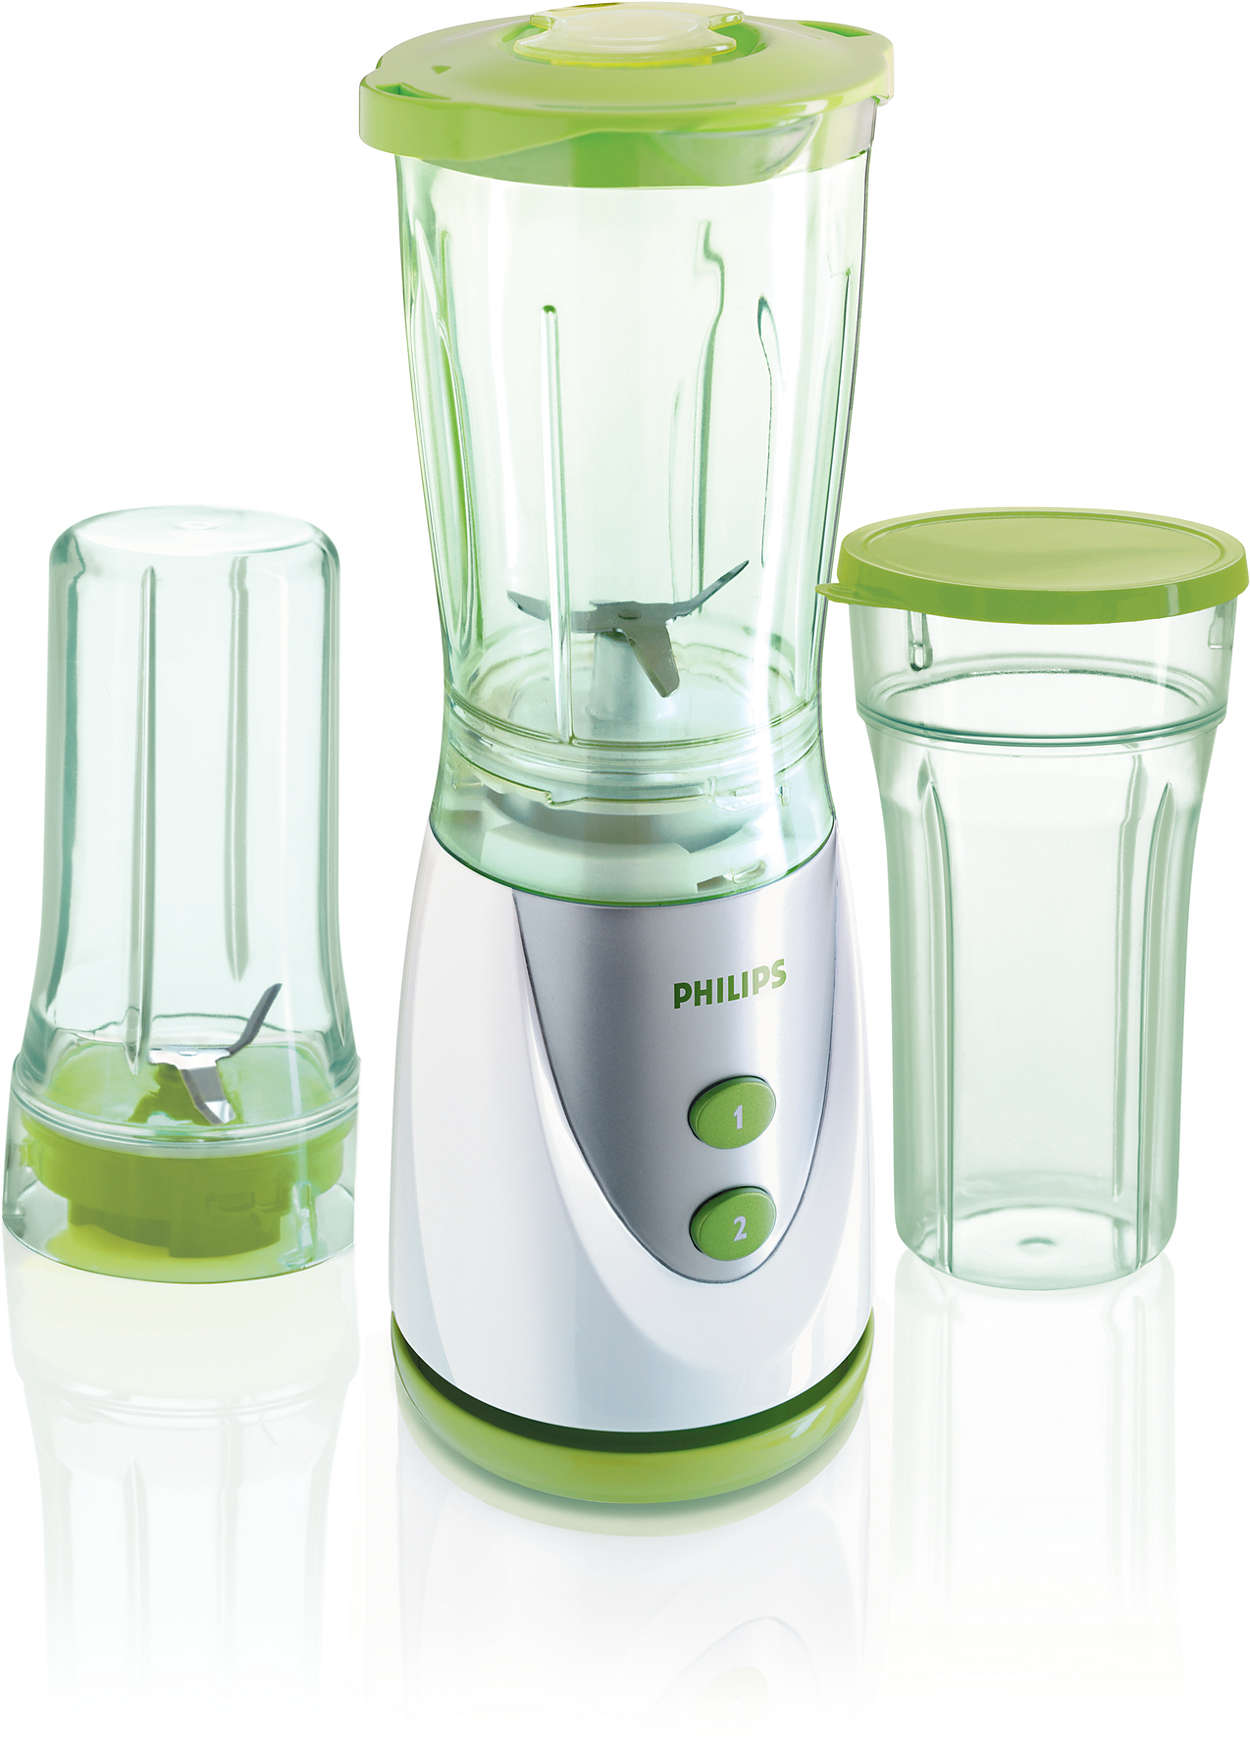 mini blender hr287060 philips